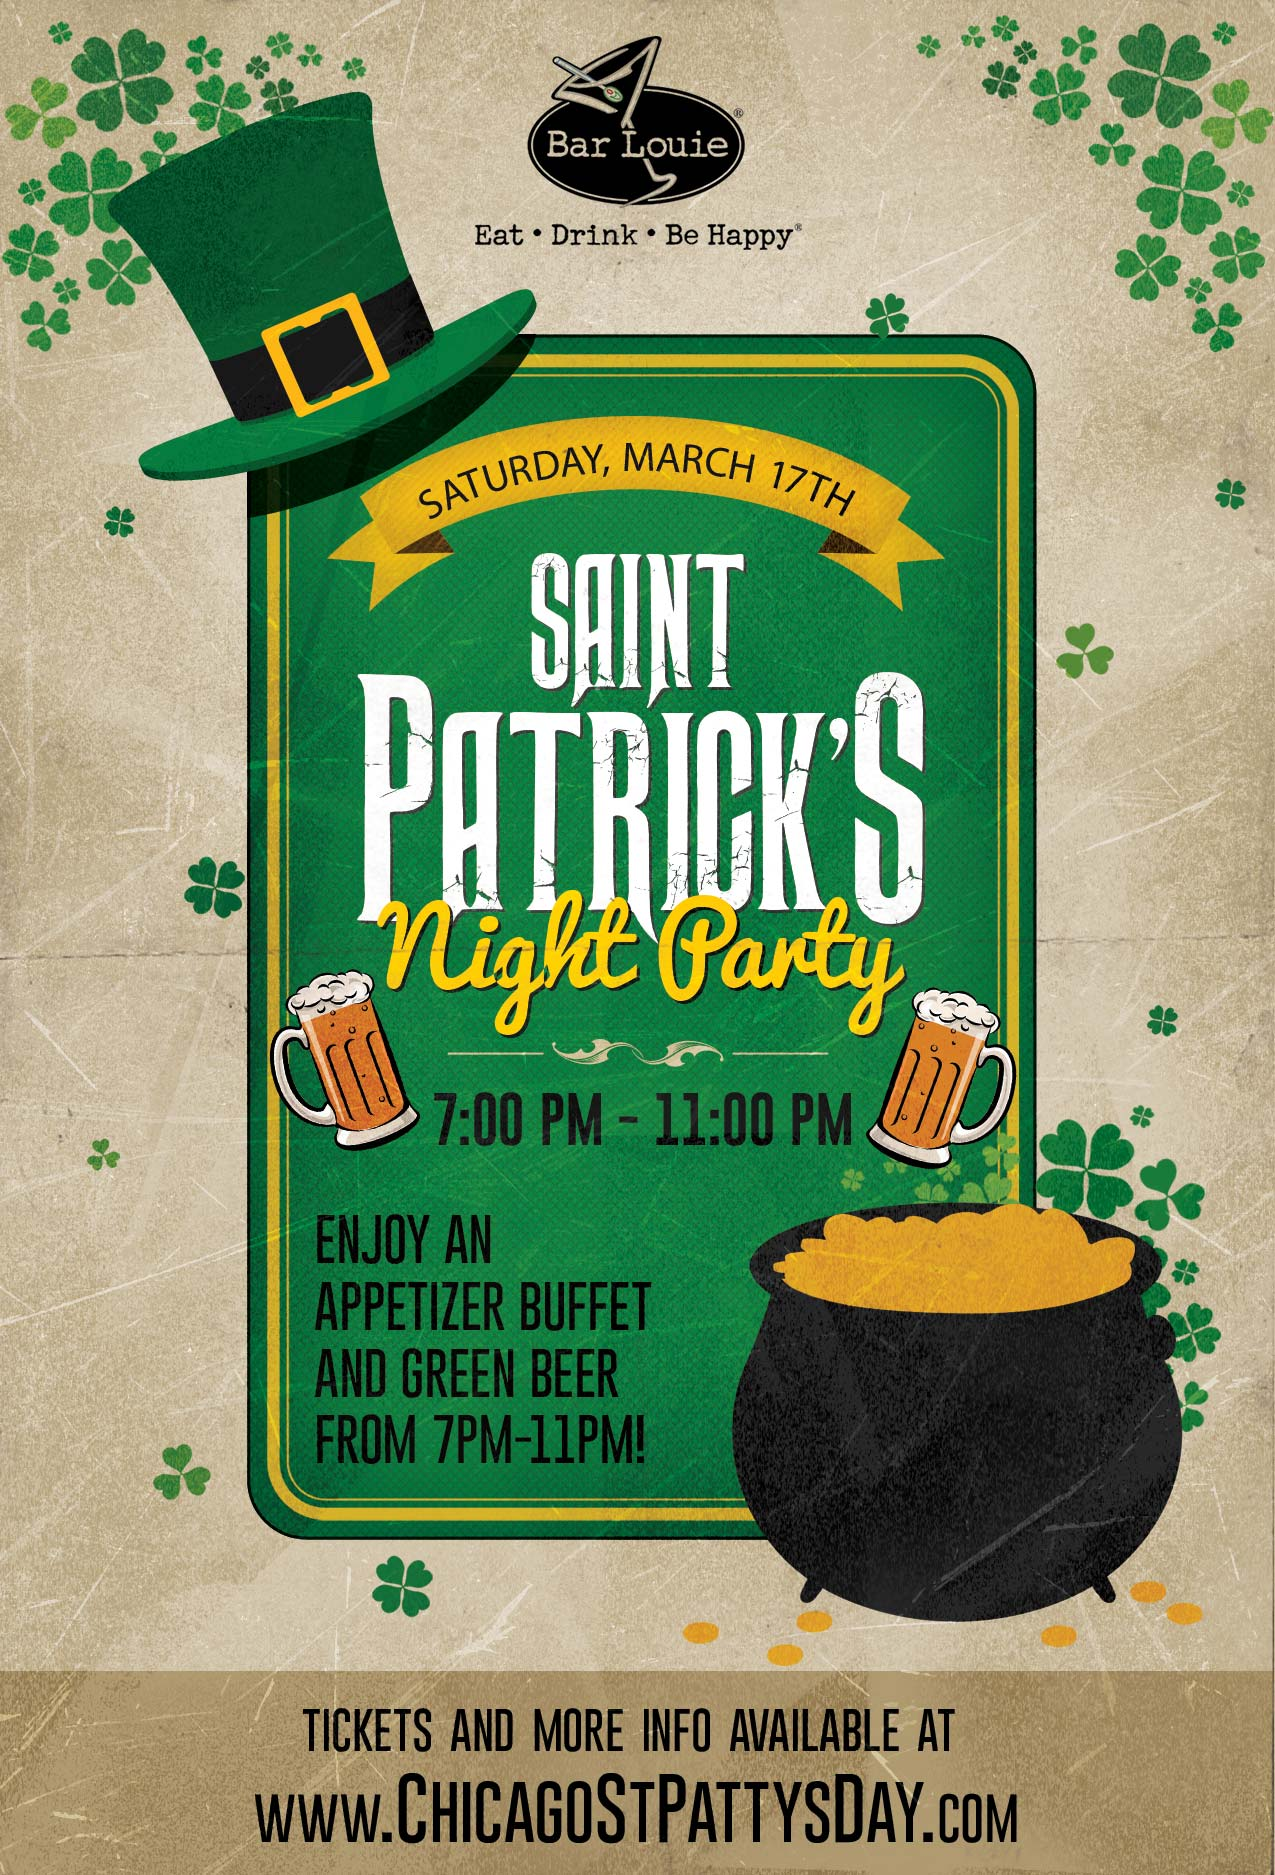 Saint Patrick's Day Night Party at Bar Louie - Tickets include Green Beer from 7pm-11pm and an appetizer buffet from 7pm-9pm!  Join us for games like Connect 4, Twister, other board games and tons more!